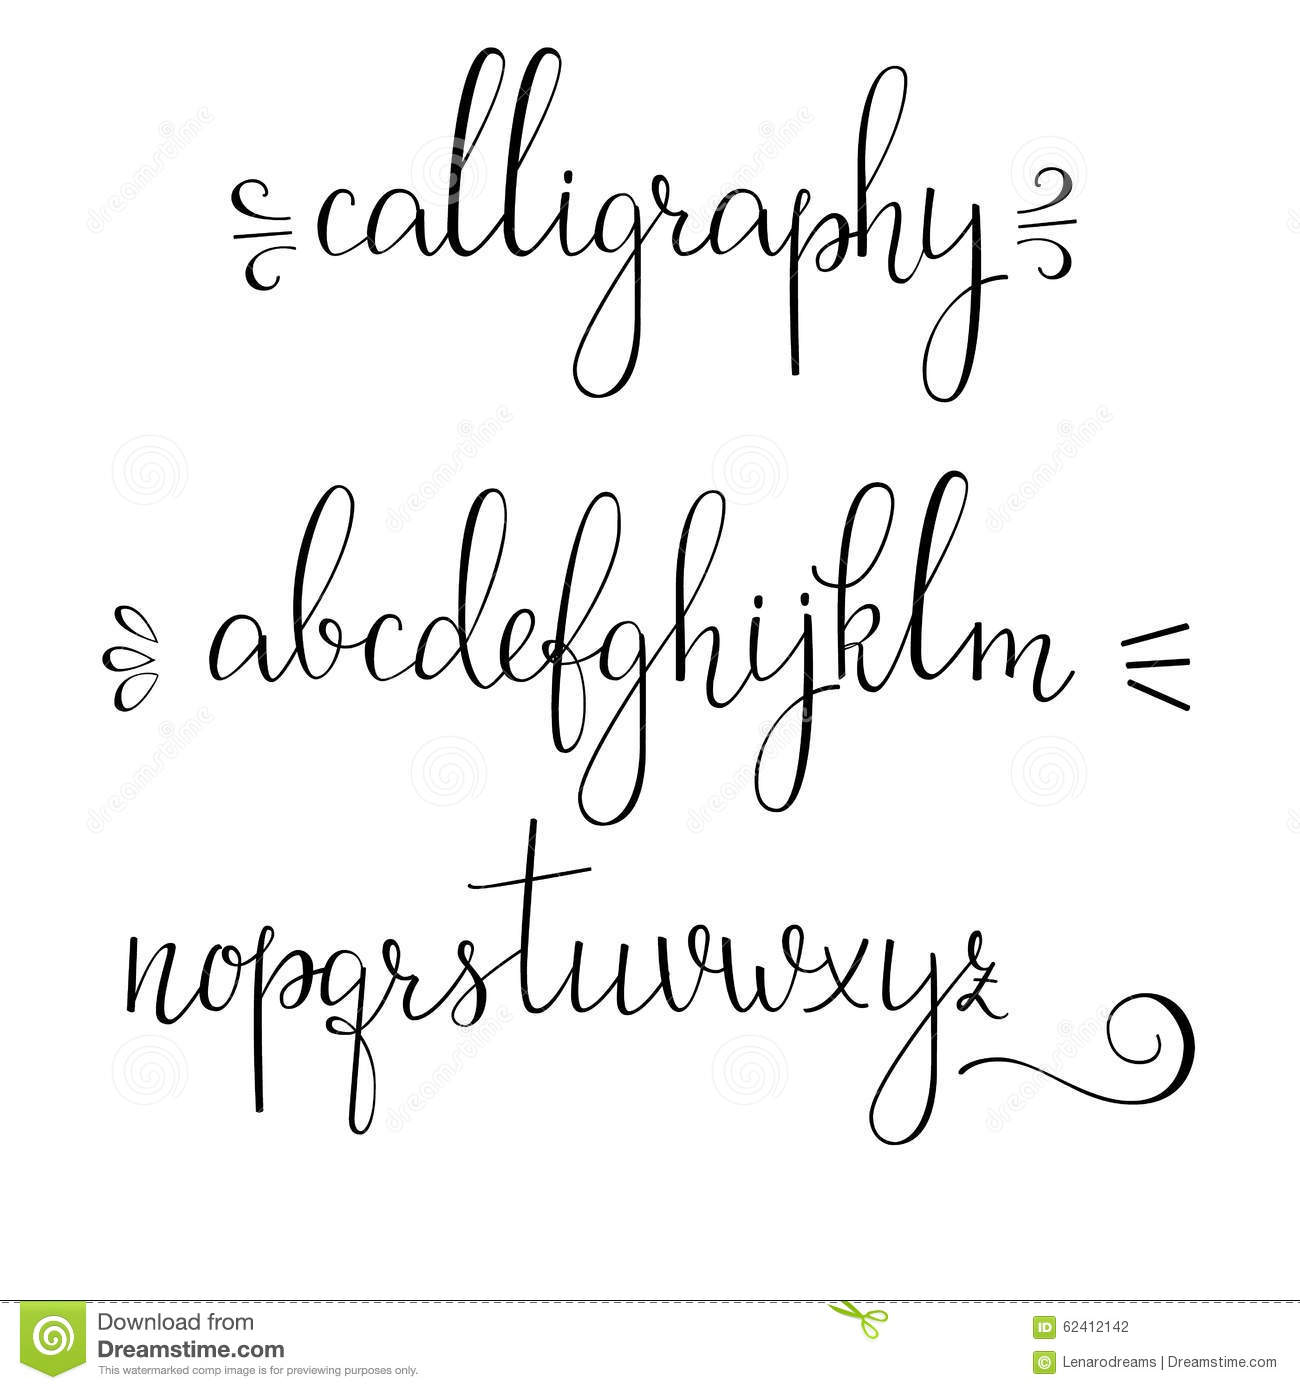 calligraphy cursive font stock illustration. illustration of